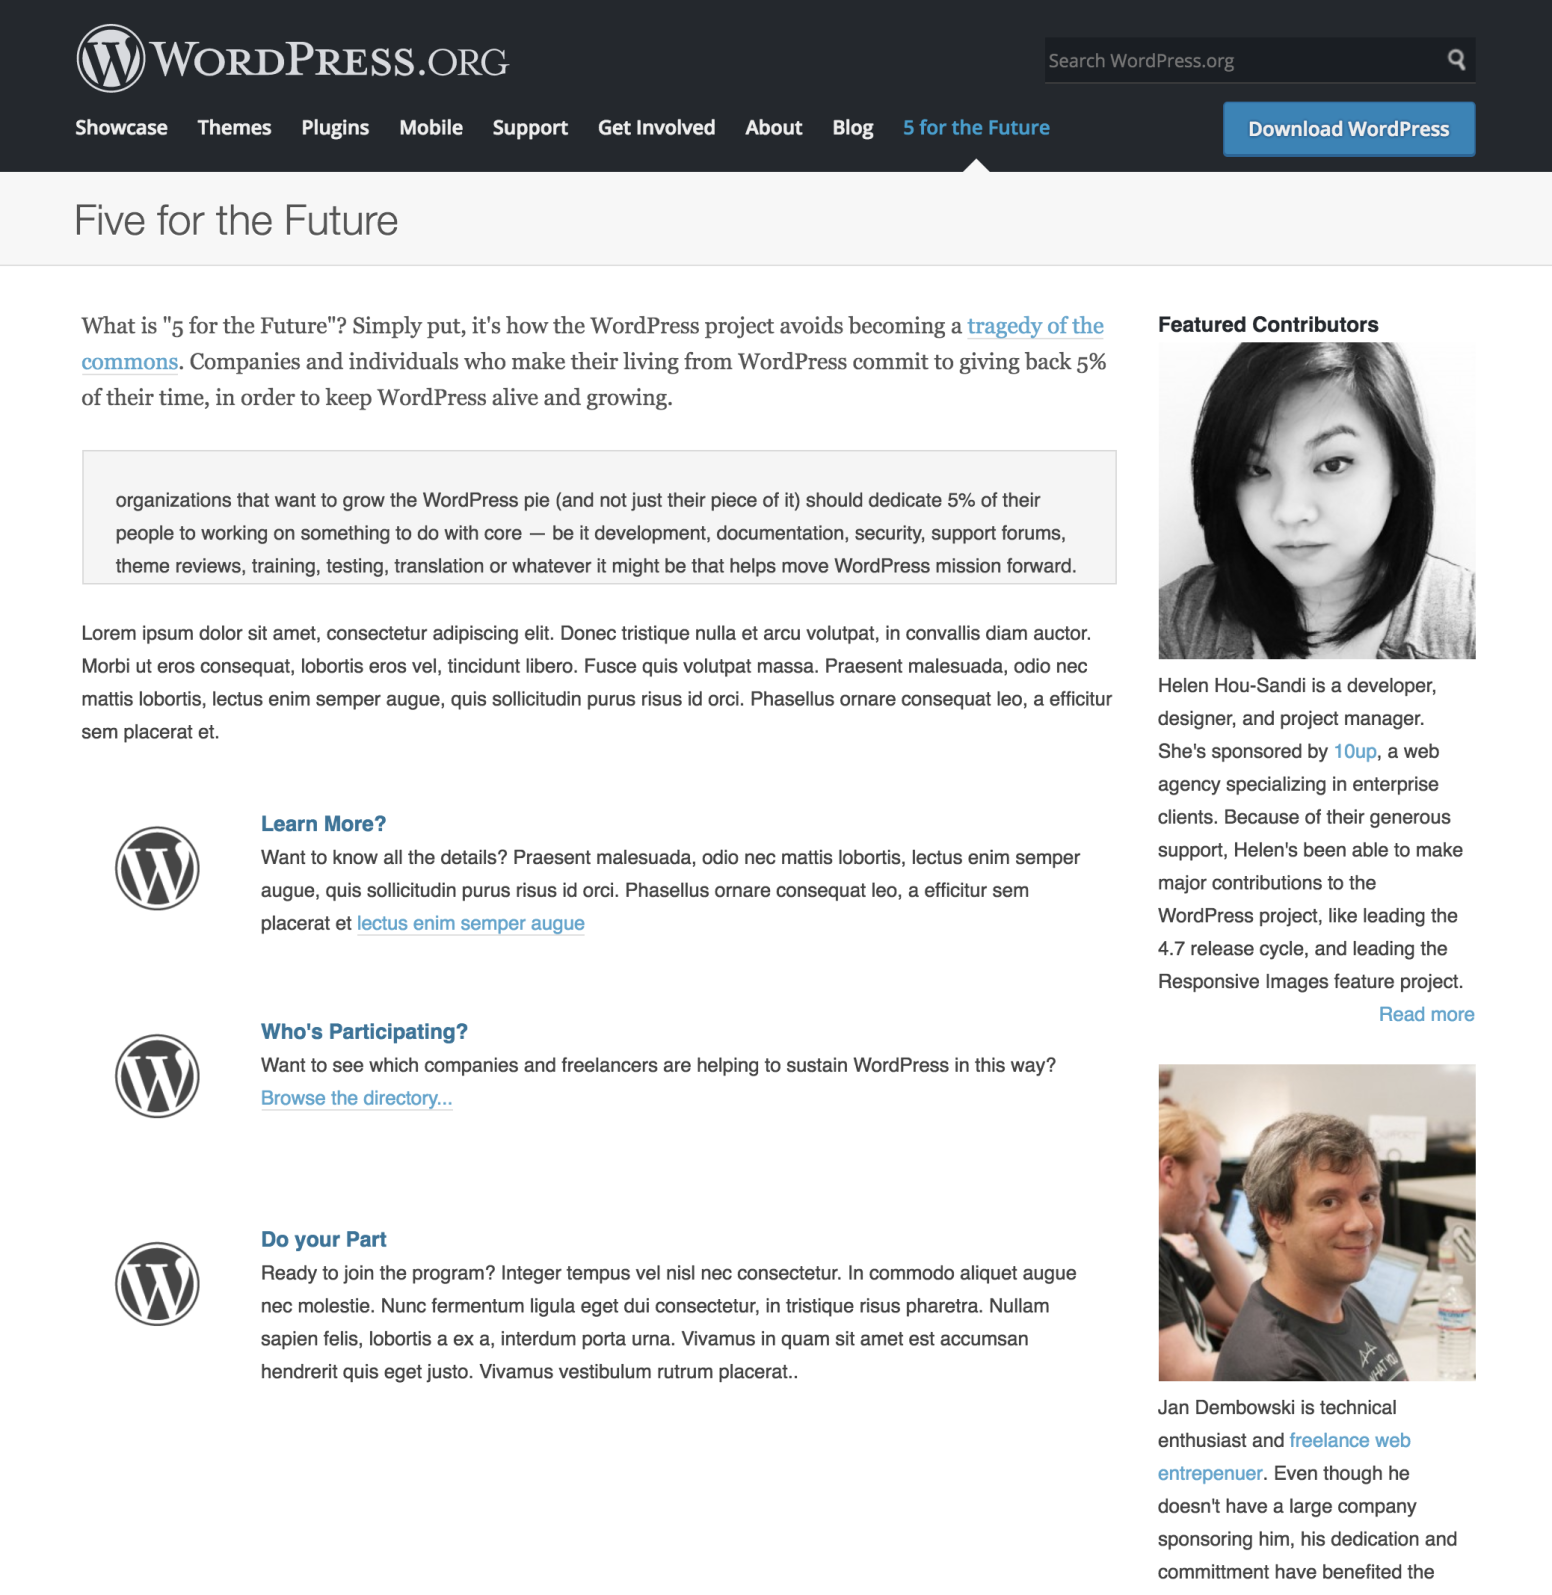 A mock-up of a Five for the Future page with a WordPress.org header, a short description of the program, and some lorem ipsum, and Featured Contributor case studies (Helen Hou-Sandí and Jan Dembowski) on the right side bar.